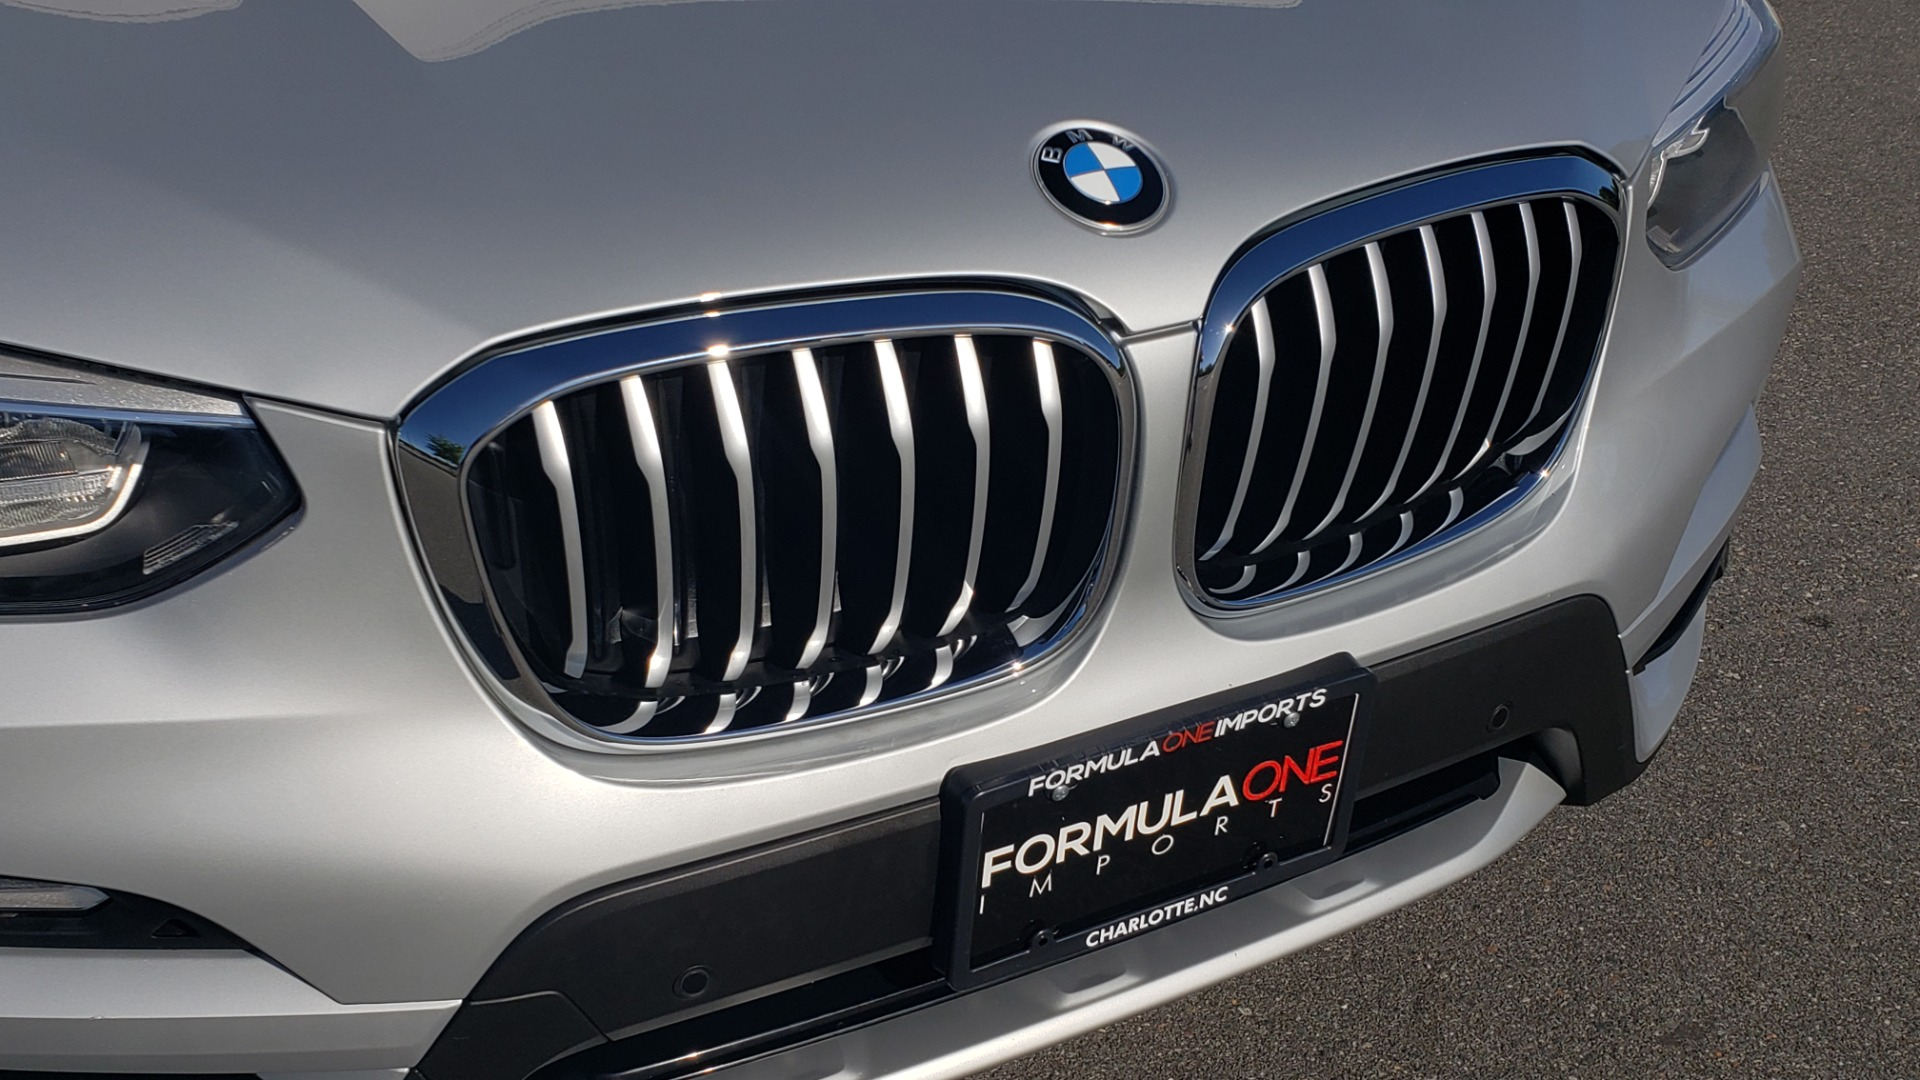 Used 2019 BMW X3 XDRIVE30I / DRVR ASST / PANO-ROOF / HTD STS / REARVIEW for sale $41,995 at Formula Imports in Charlotte NC 28227 27